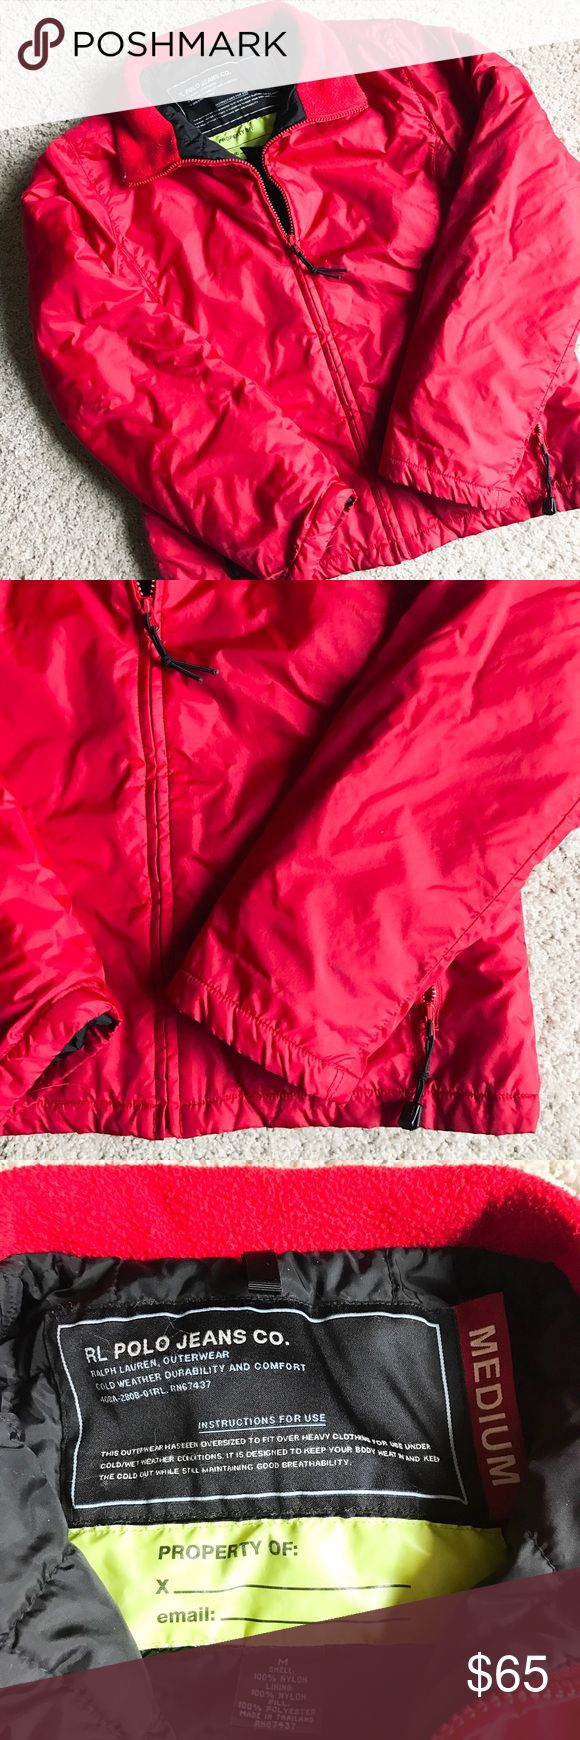 Polo Jeans Ralph Lauren Red Puffer Jacket Warm and sporty puffer jacket from Polo Jeans by Ralph Lauren. Lighter weight puffer so it could work well for spring. Bright red. Logo on back of collar. Size medium. Excellent condition with no signs of excessive wear and no damage at all. Polo by Ralph Lauren Jackets & Coats Puffers